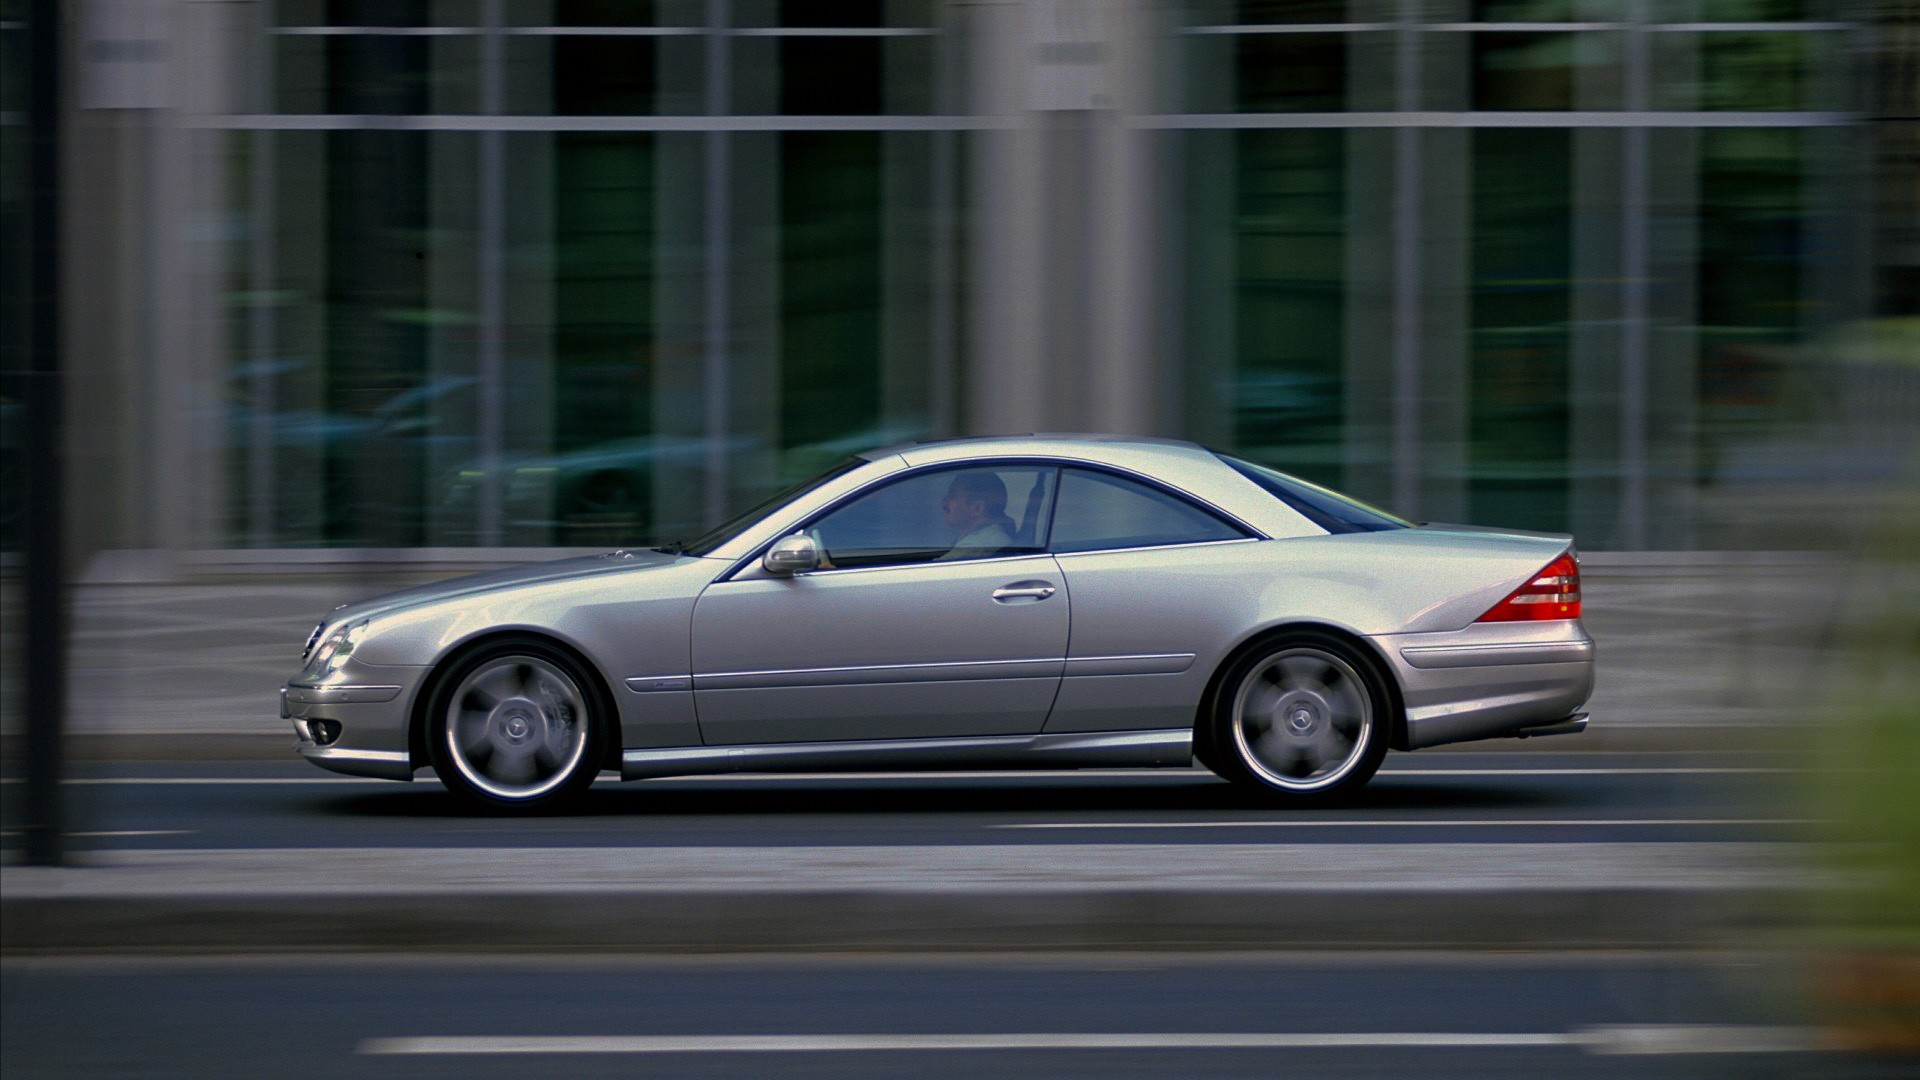 mercedes cl 55 amg f1 limited edition (3)